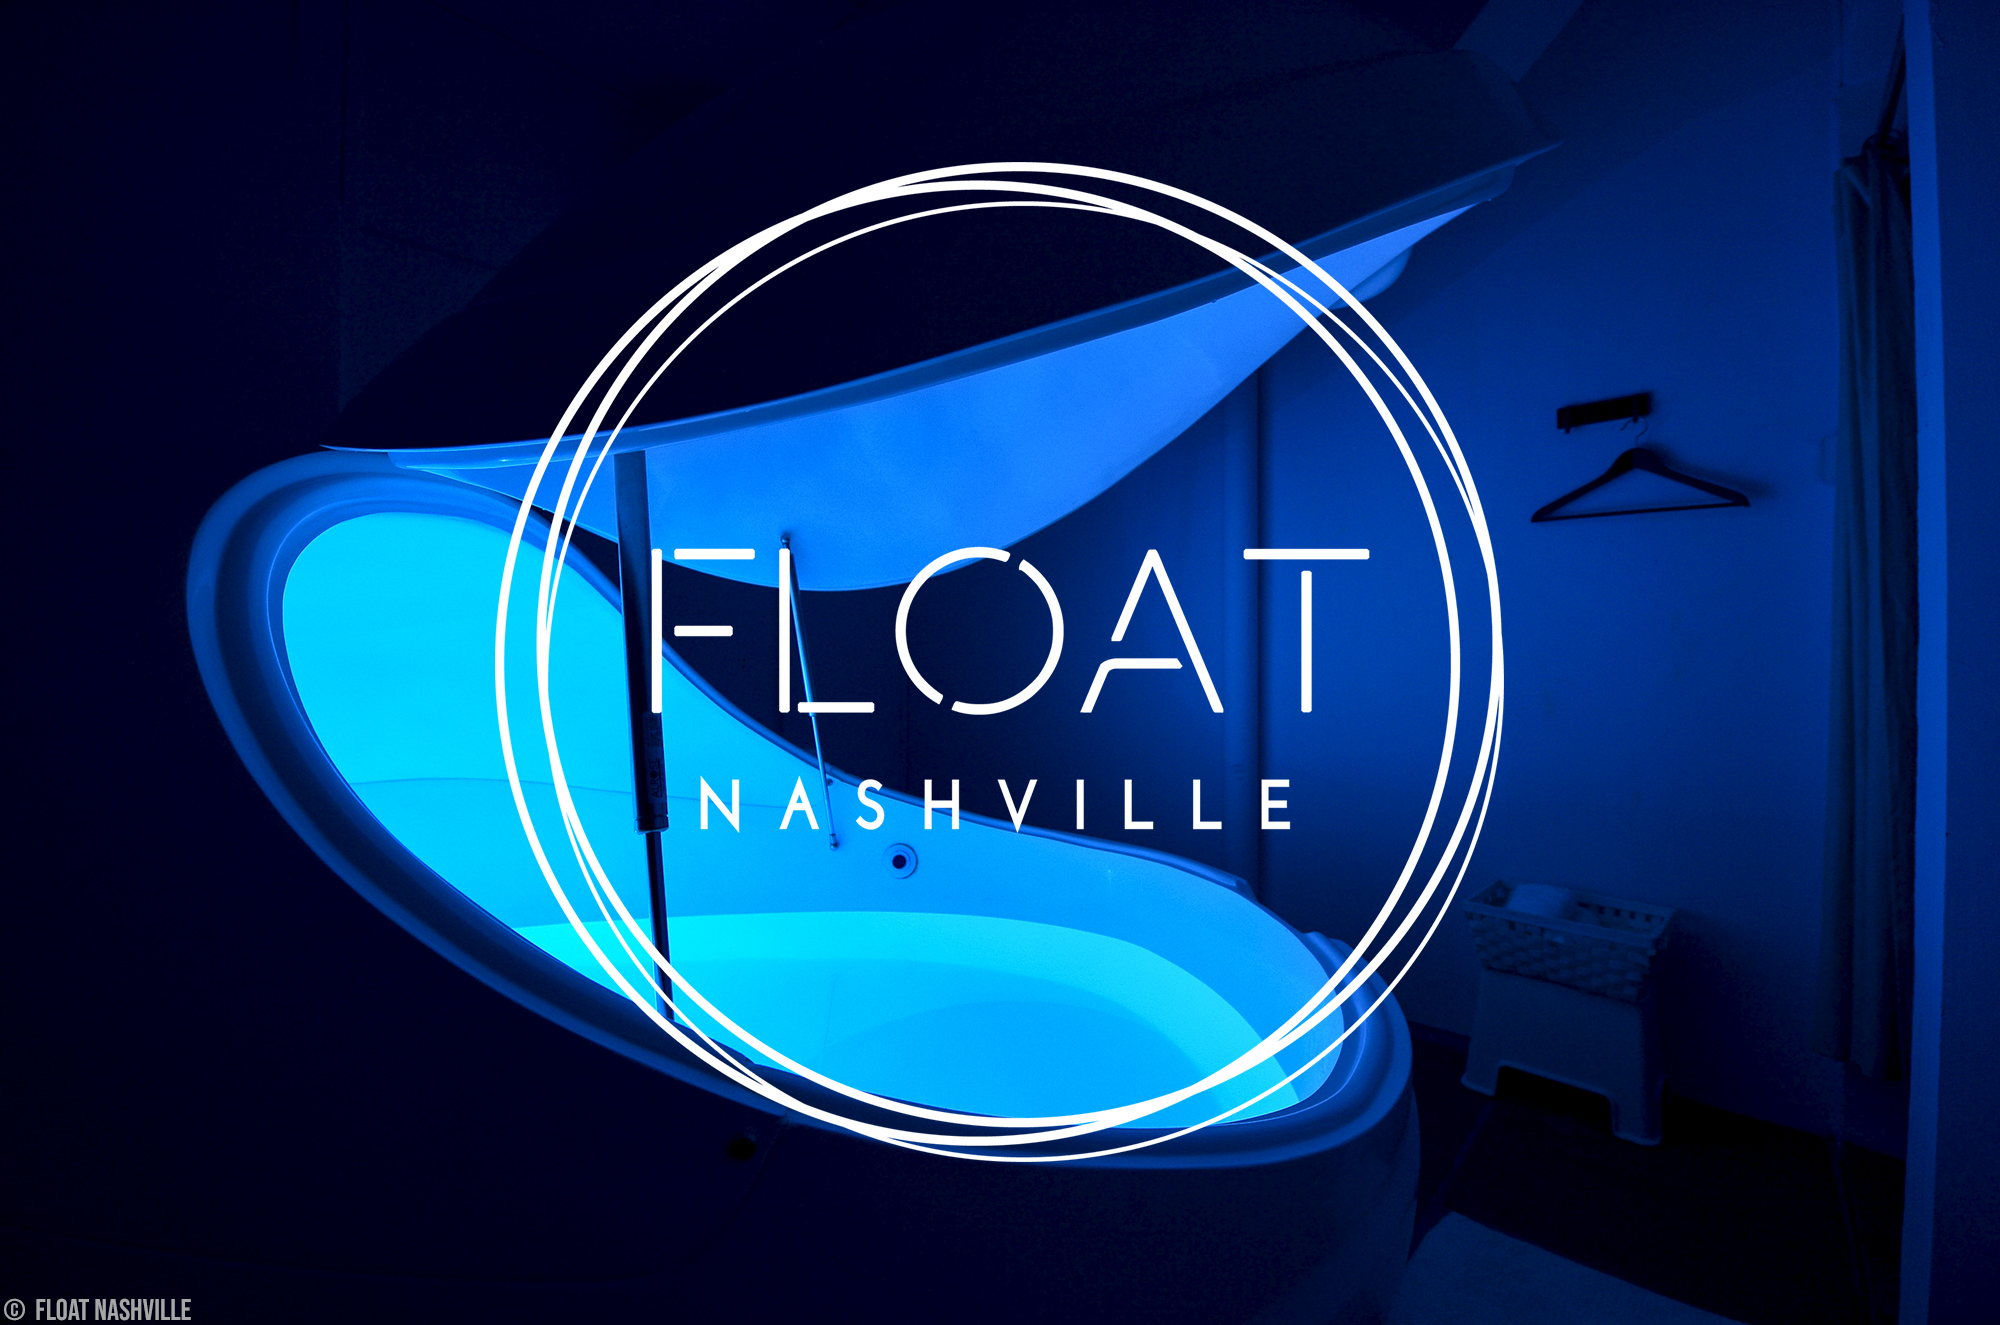 Float Nashville.jpg